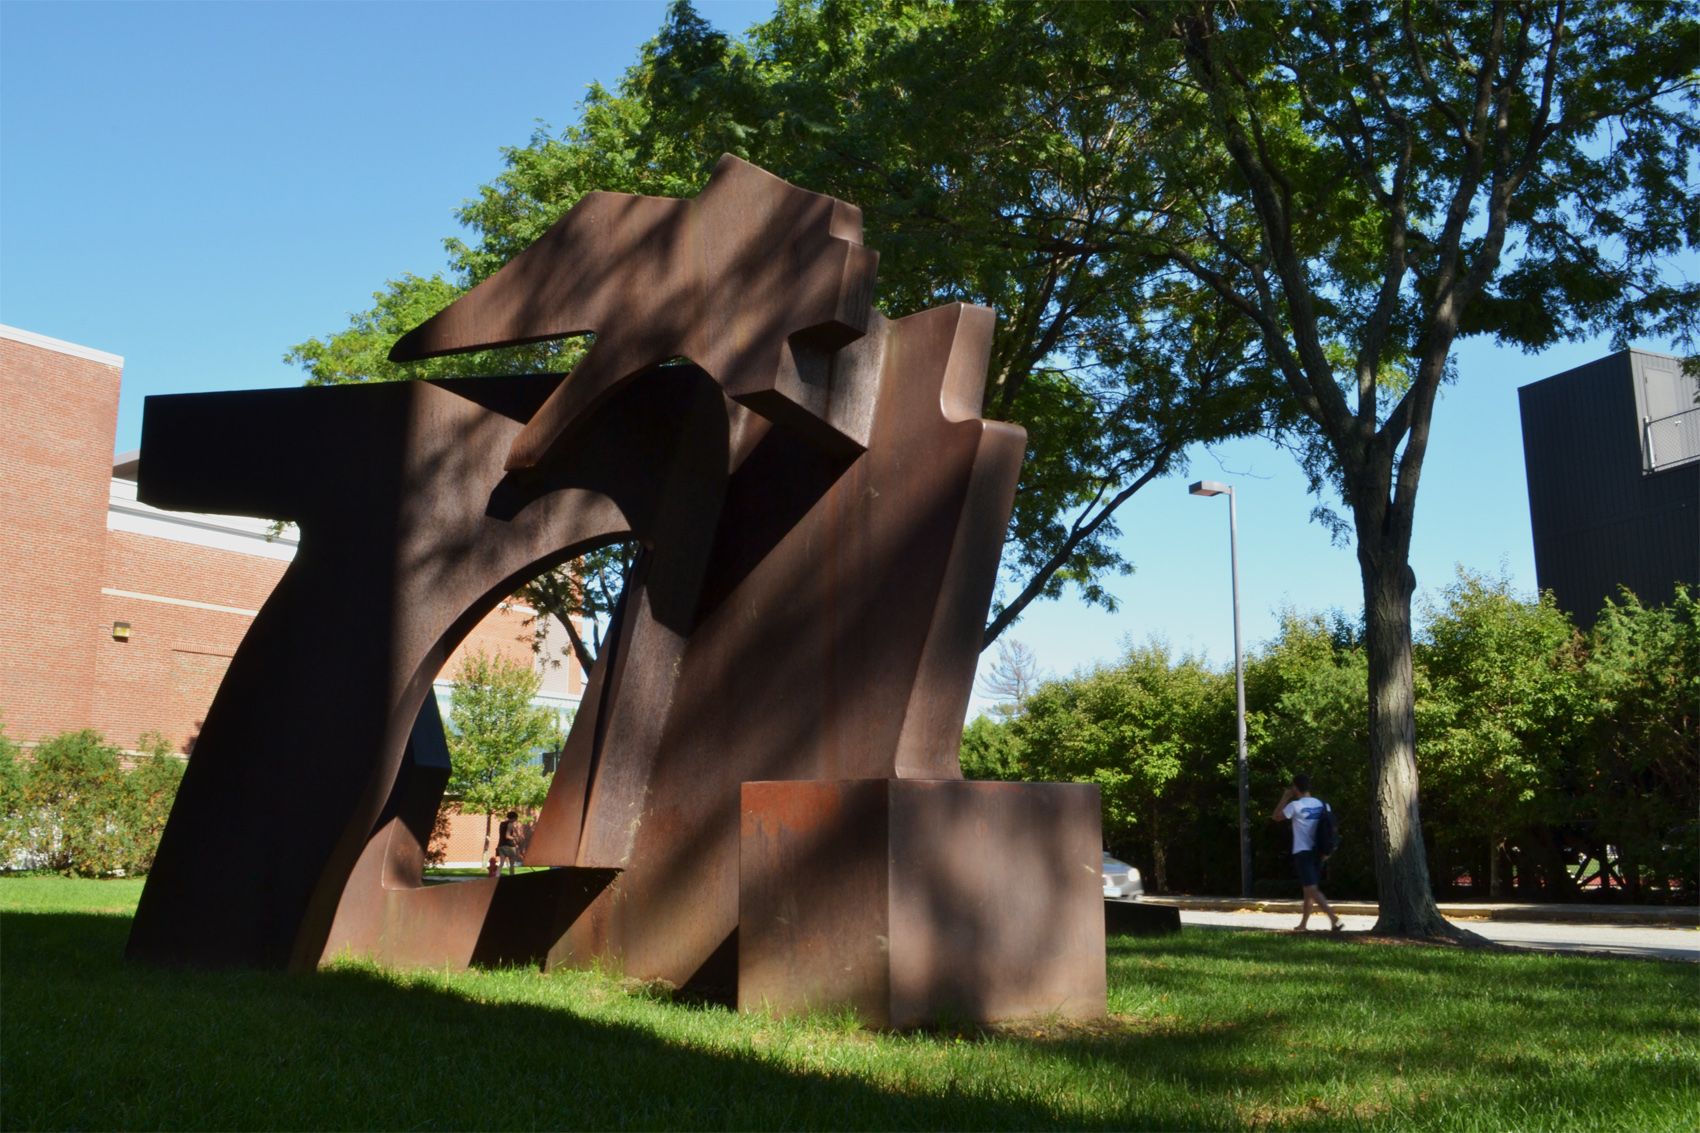 This 1971 sculpture by Richard Howard Hunt honors the composer T.J. Anderson, who chaired the Tufts University music department. It is one stop on the Tufts African American Freedom Trail. (Alexa Vazquez/WBUR)